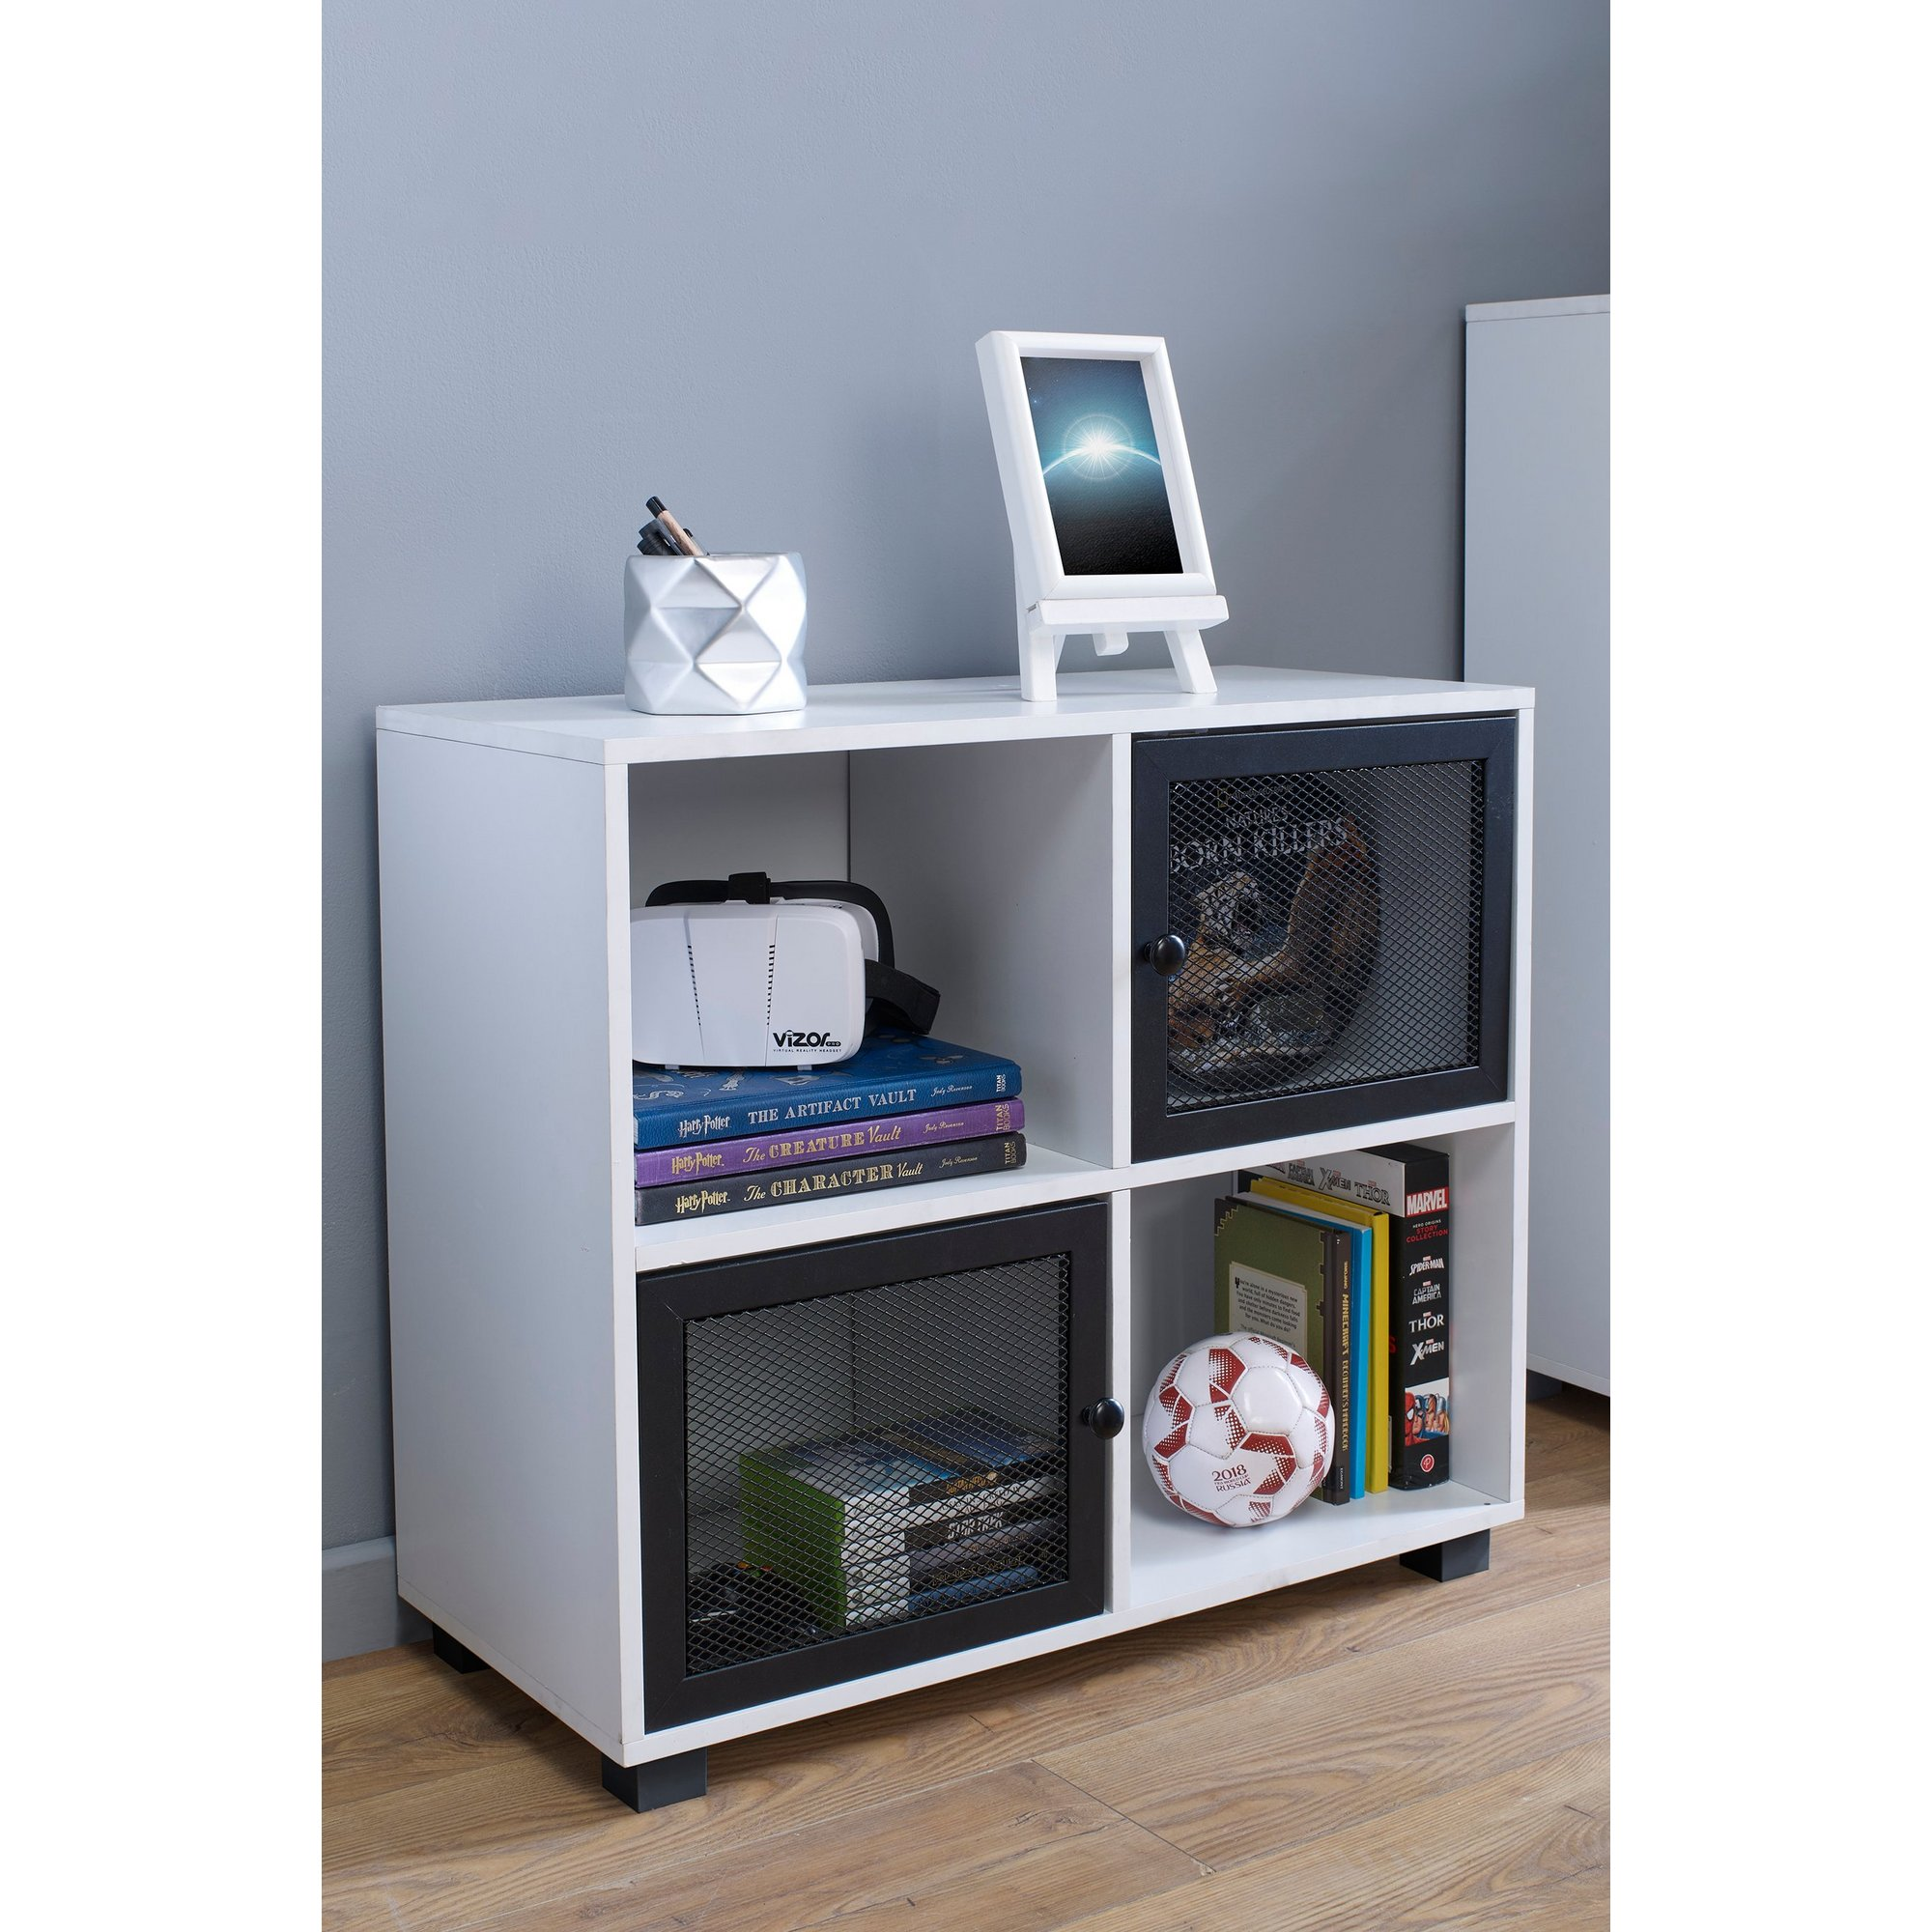 Image of 4 Cube Cabinet with 2 Mesh Doors